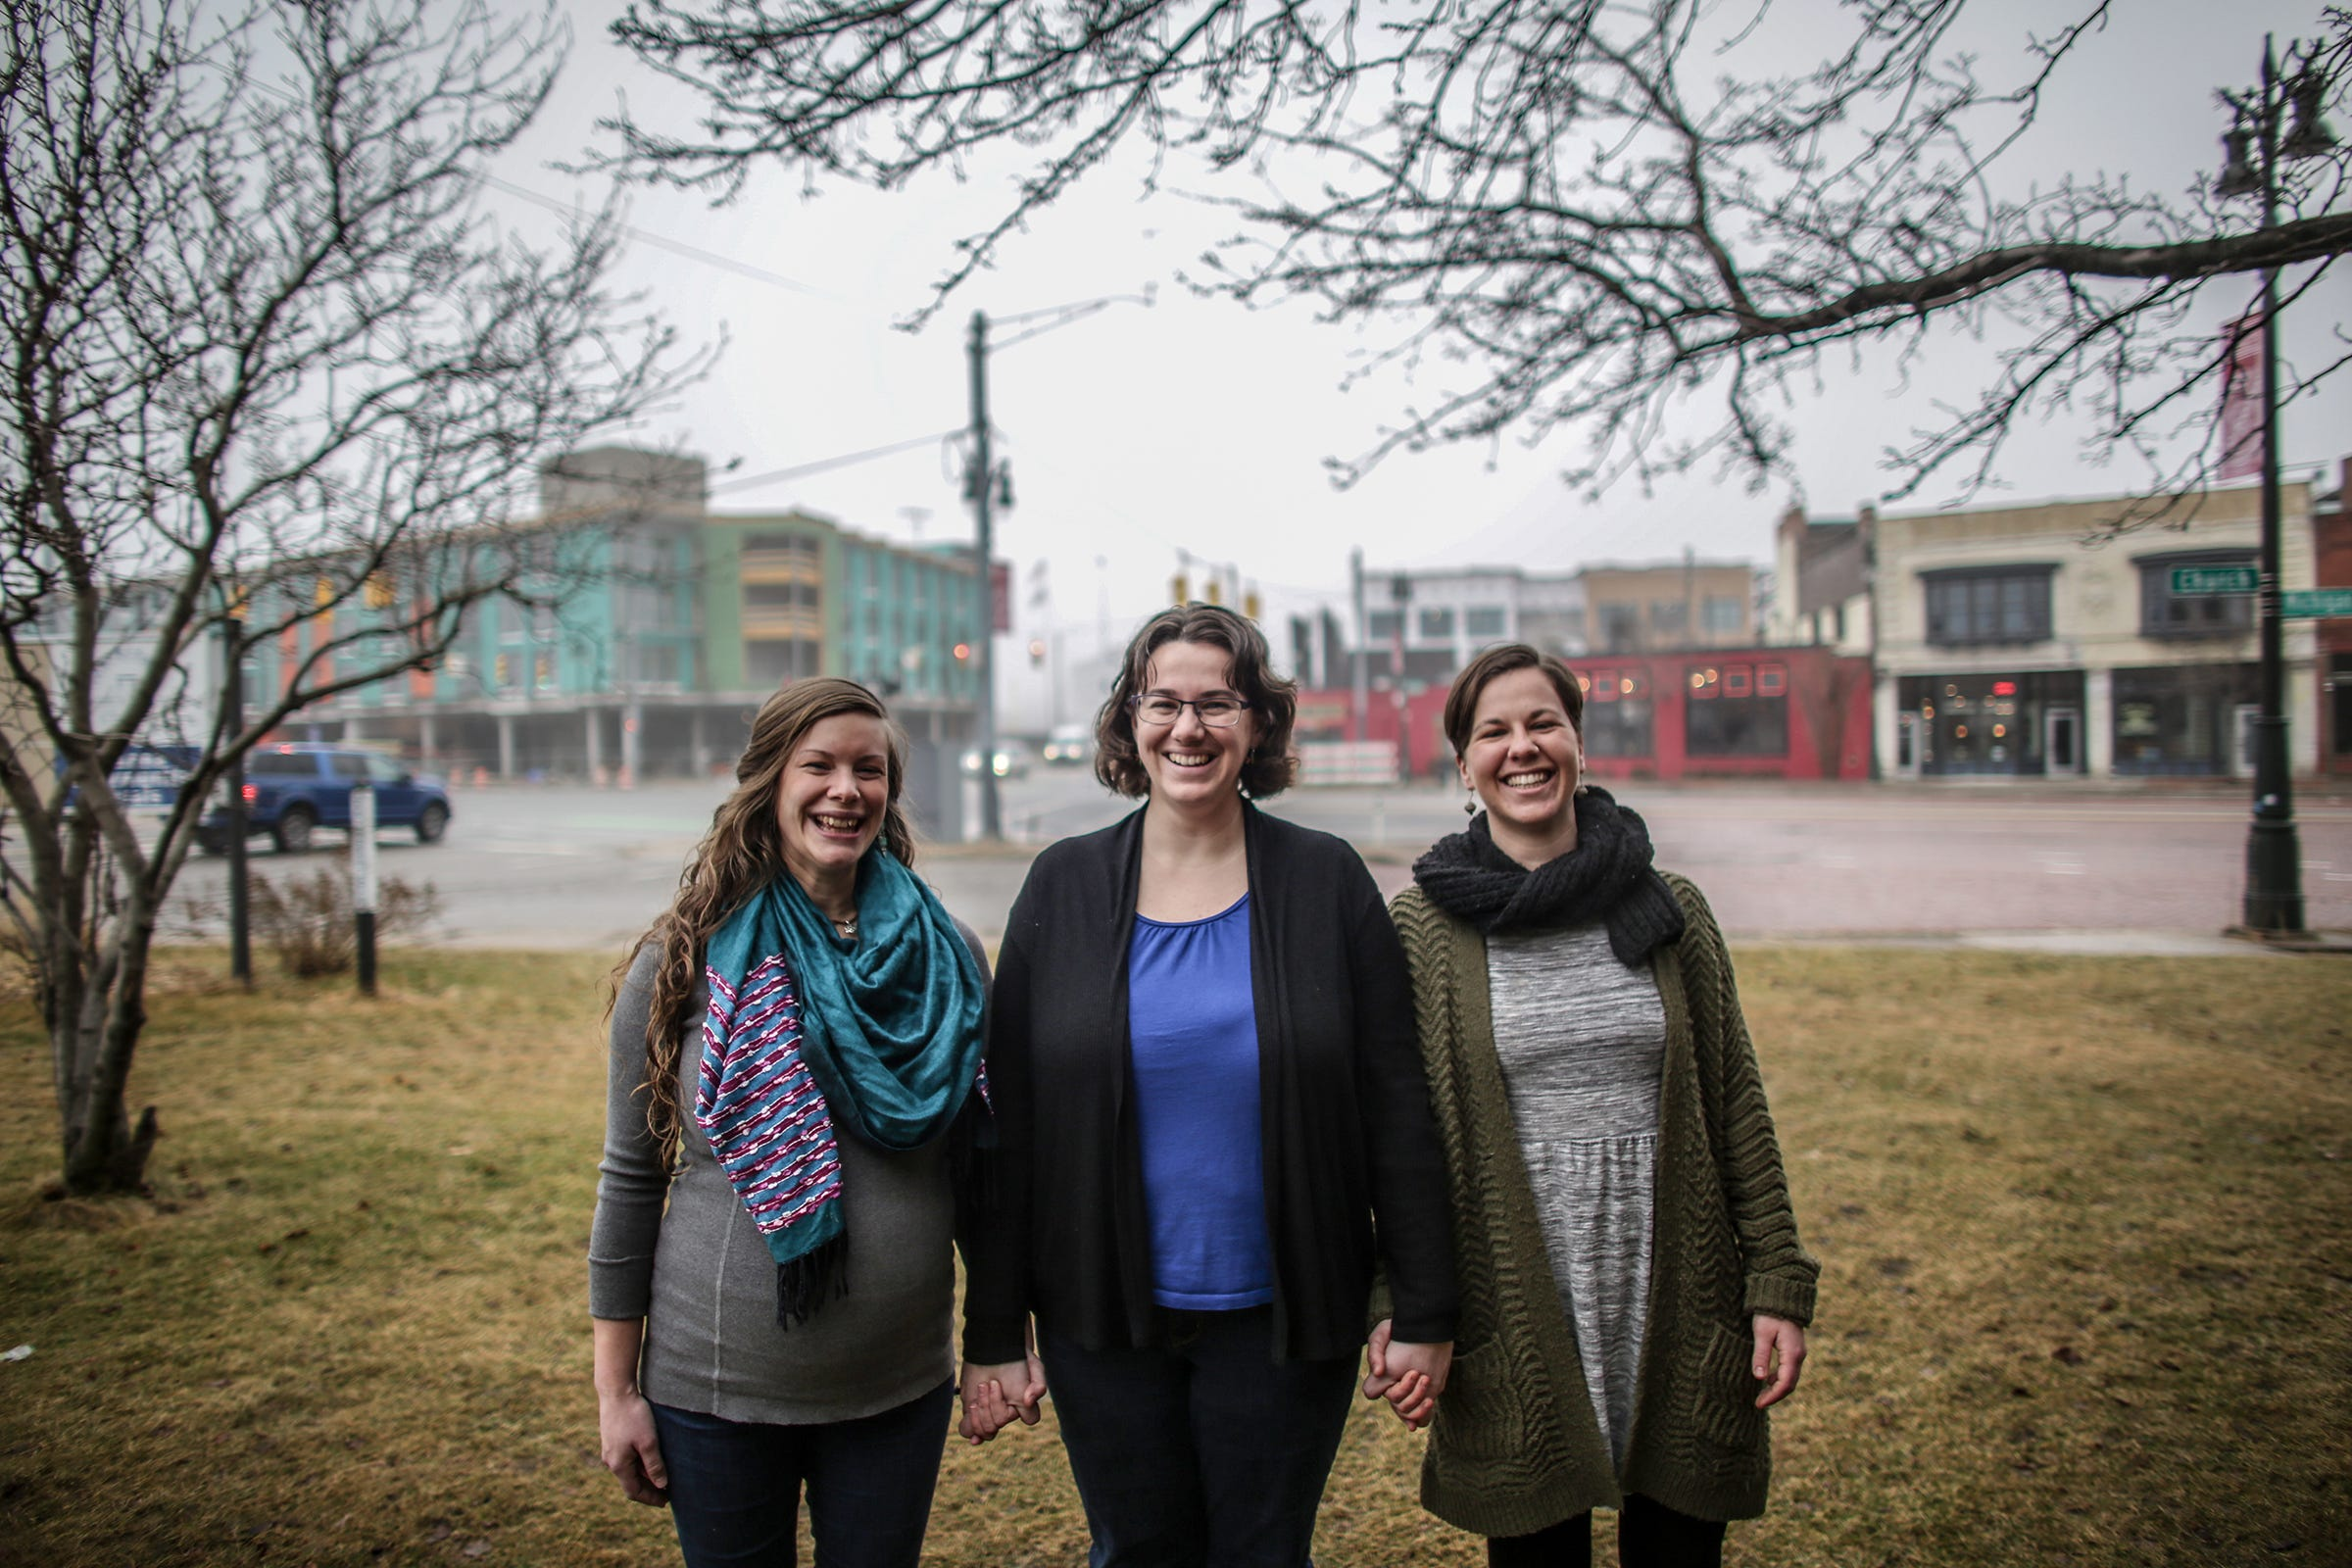 Geez magazine's art director Lucia Wylie-Eggert, Editor Lydia Wylie-Kellermann and Assoc. Editor Kateri Boucher stand outside of the Peace and Justice Hive at St. Peter's Episcopal Church on the corner of Trumbull Street and Michigan Avenue in the ever-changing Corktown neighborhood of Detroit, photographed on Thursday, Feb. 7, 2019.